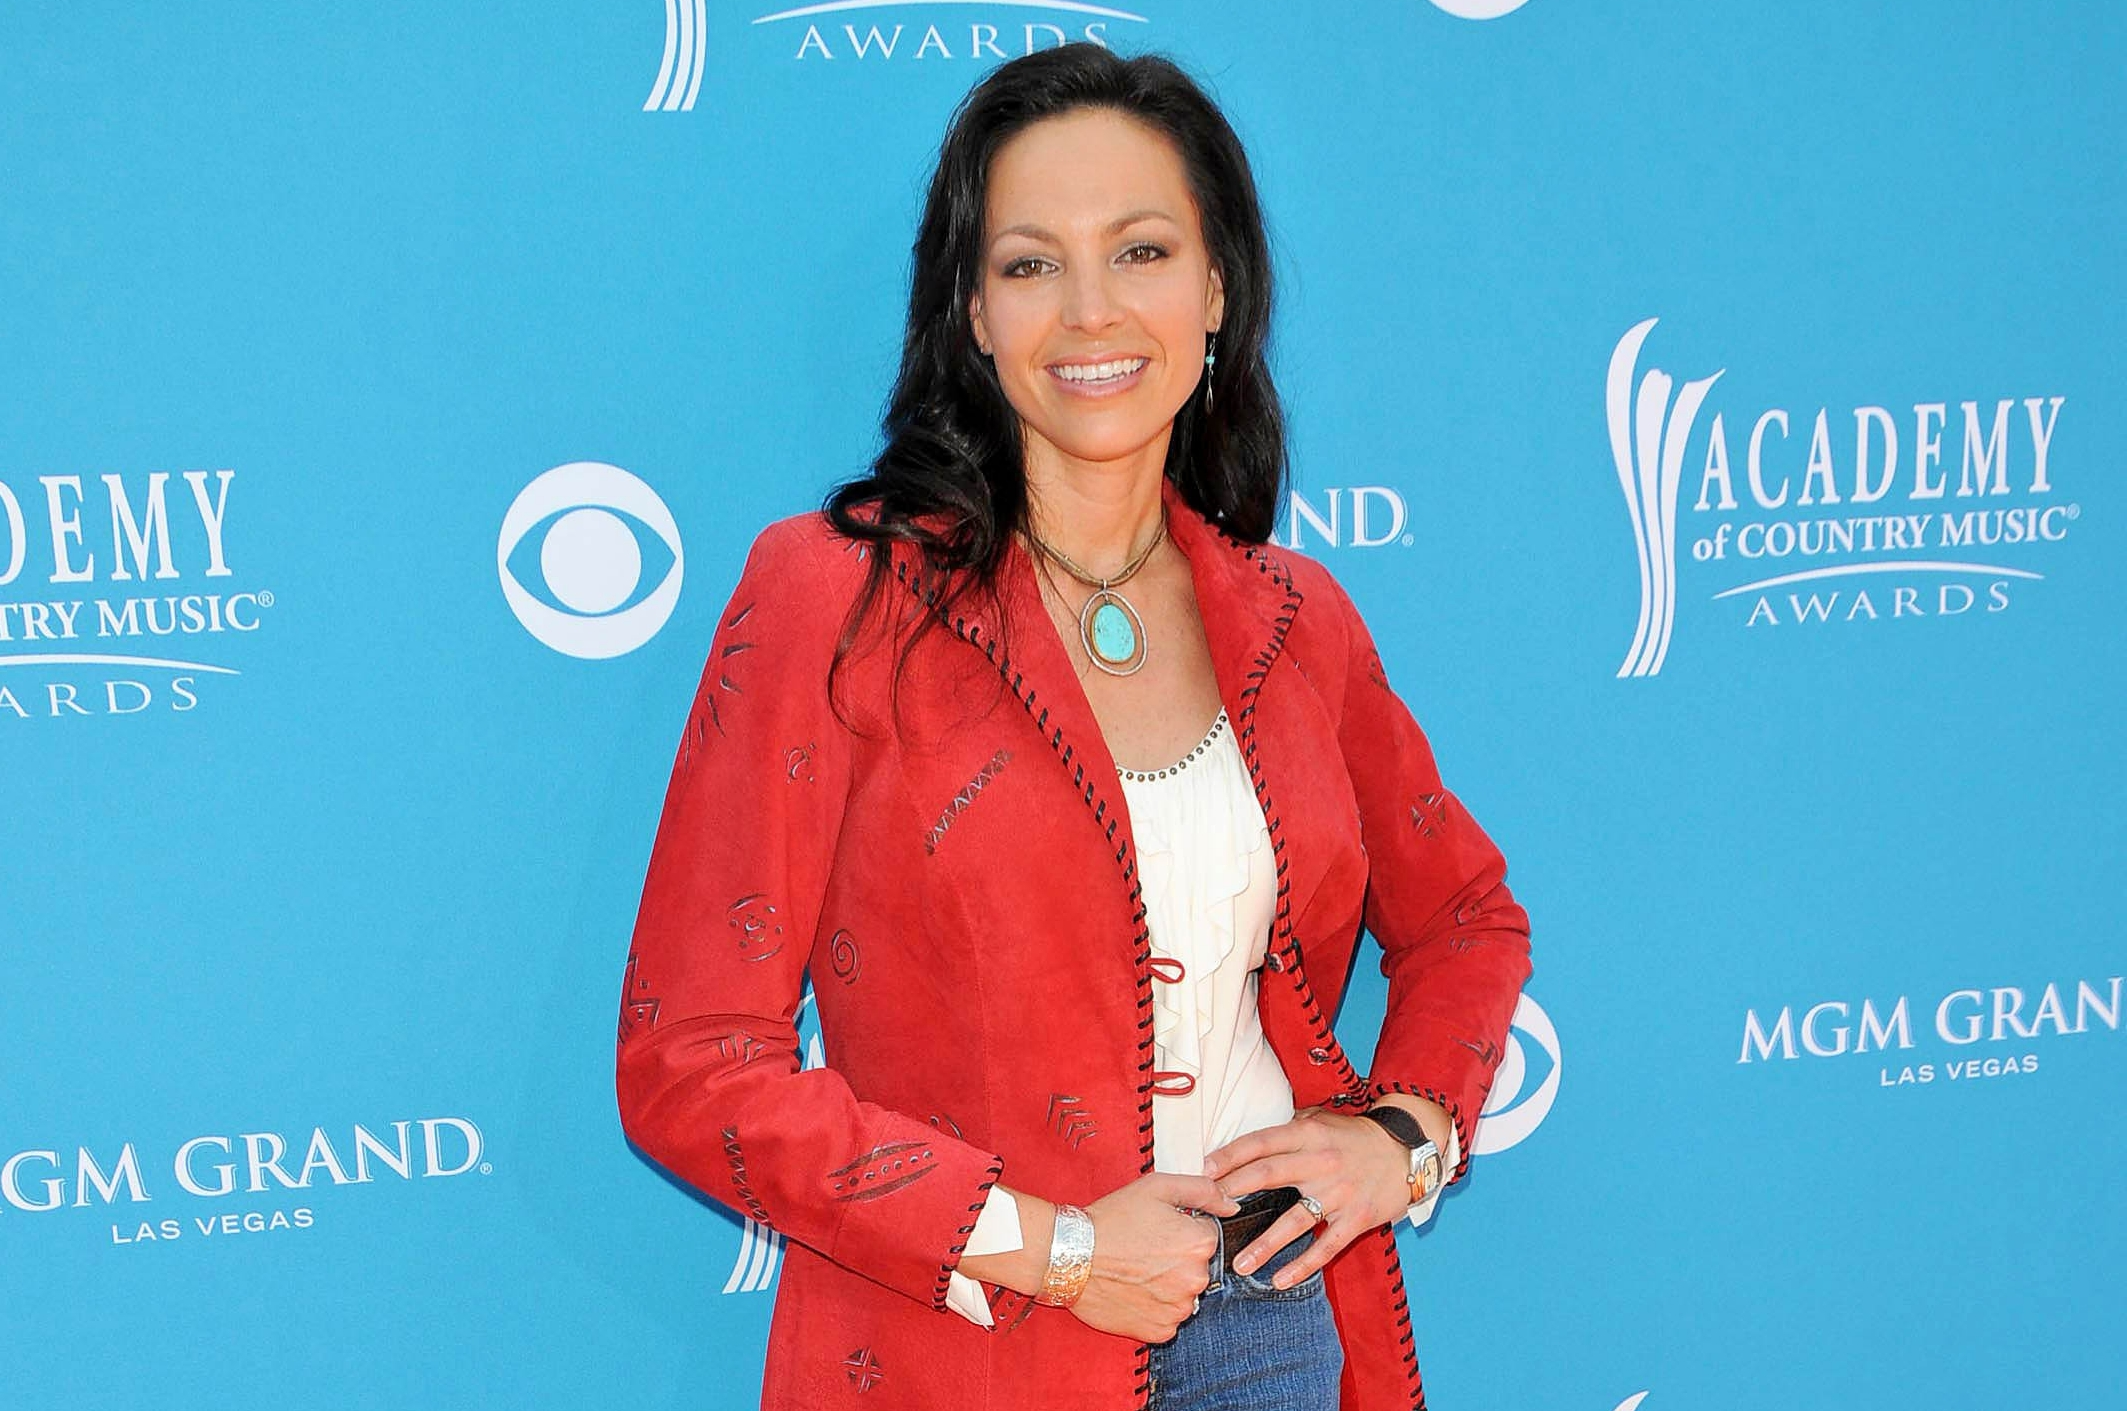 Public Memorial for Joey Feek to be Held this Sunday